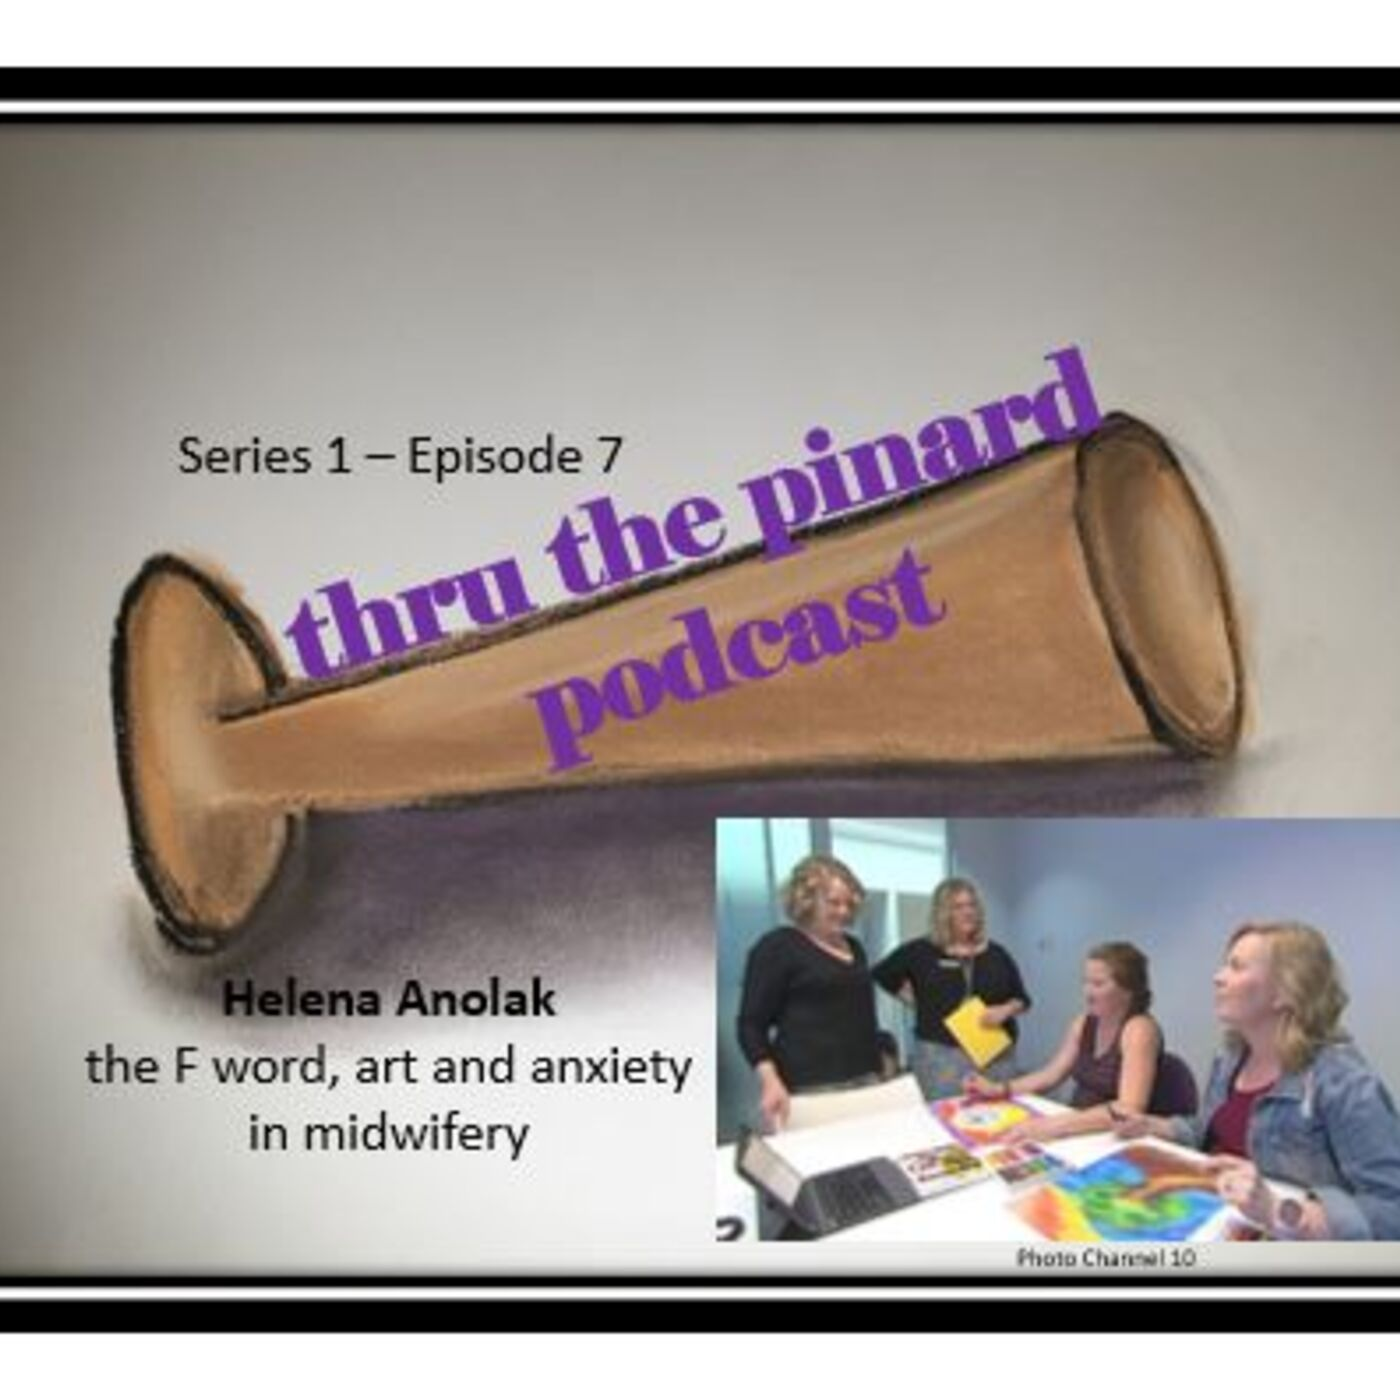 Episode 7 - Helena Anolak talks about the F word, art and anxiety in midwifery